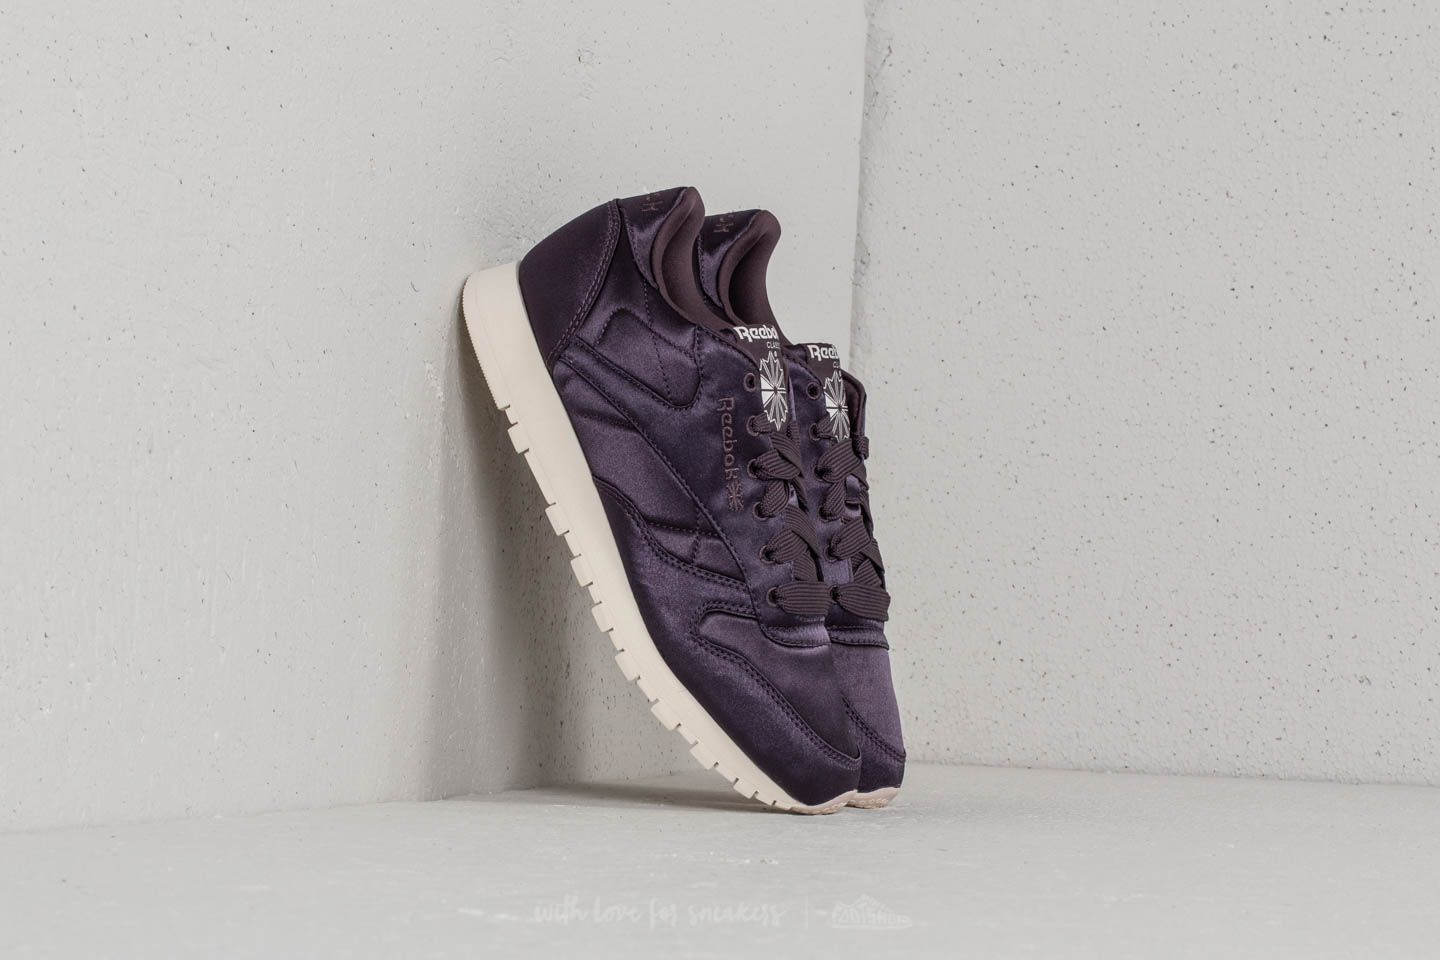 Reebok Classic Satin W Smokey Volcano & White | END.